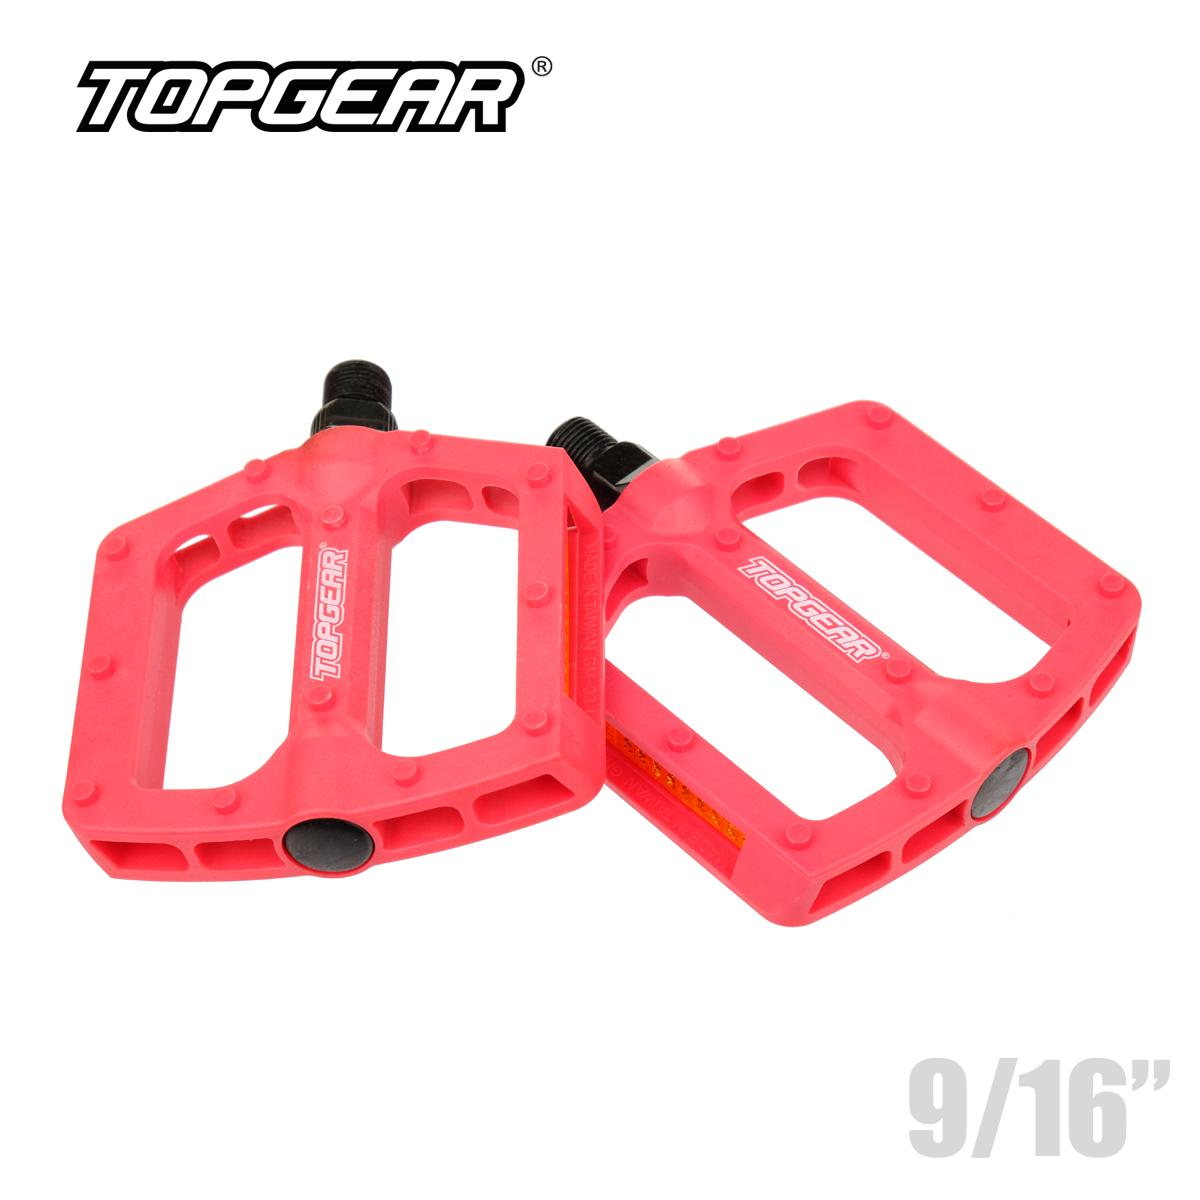 Topgear Gm-03 9/16 Low Profile Lightweight Nylon Platform Bicycle Pedals By Sd Bikes.